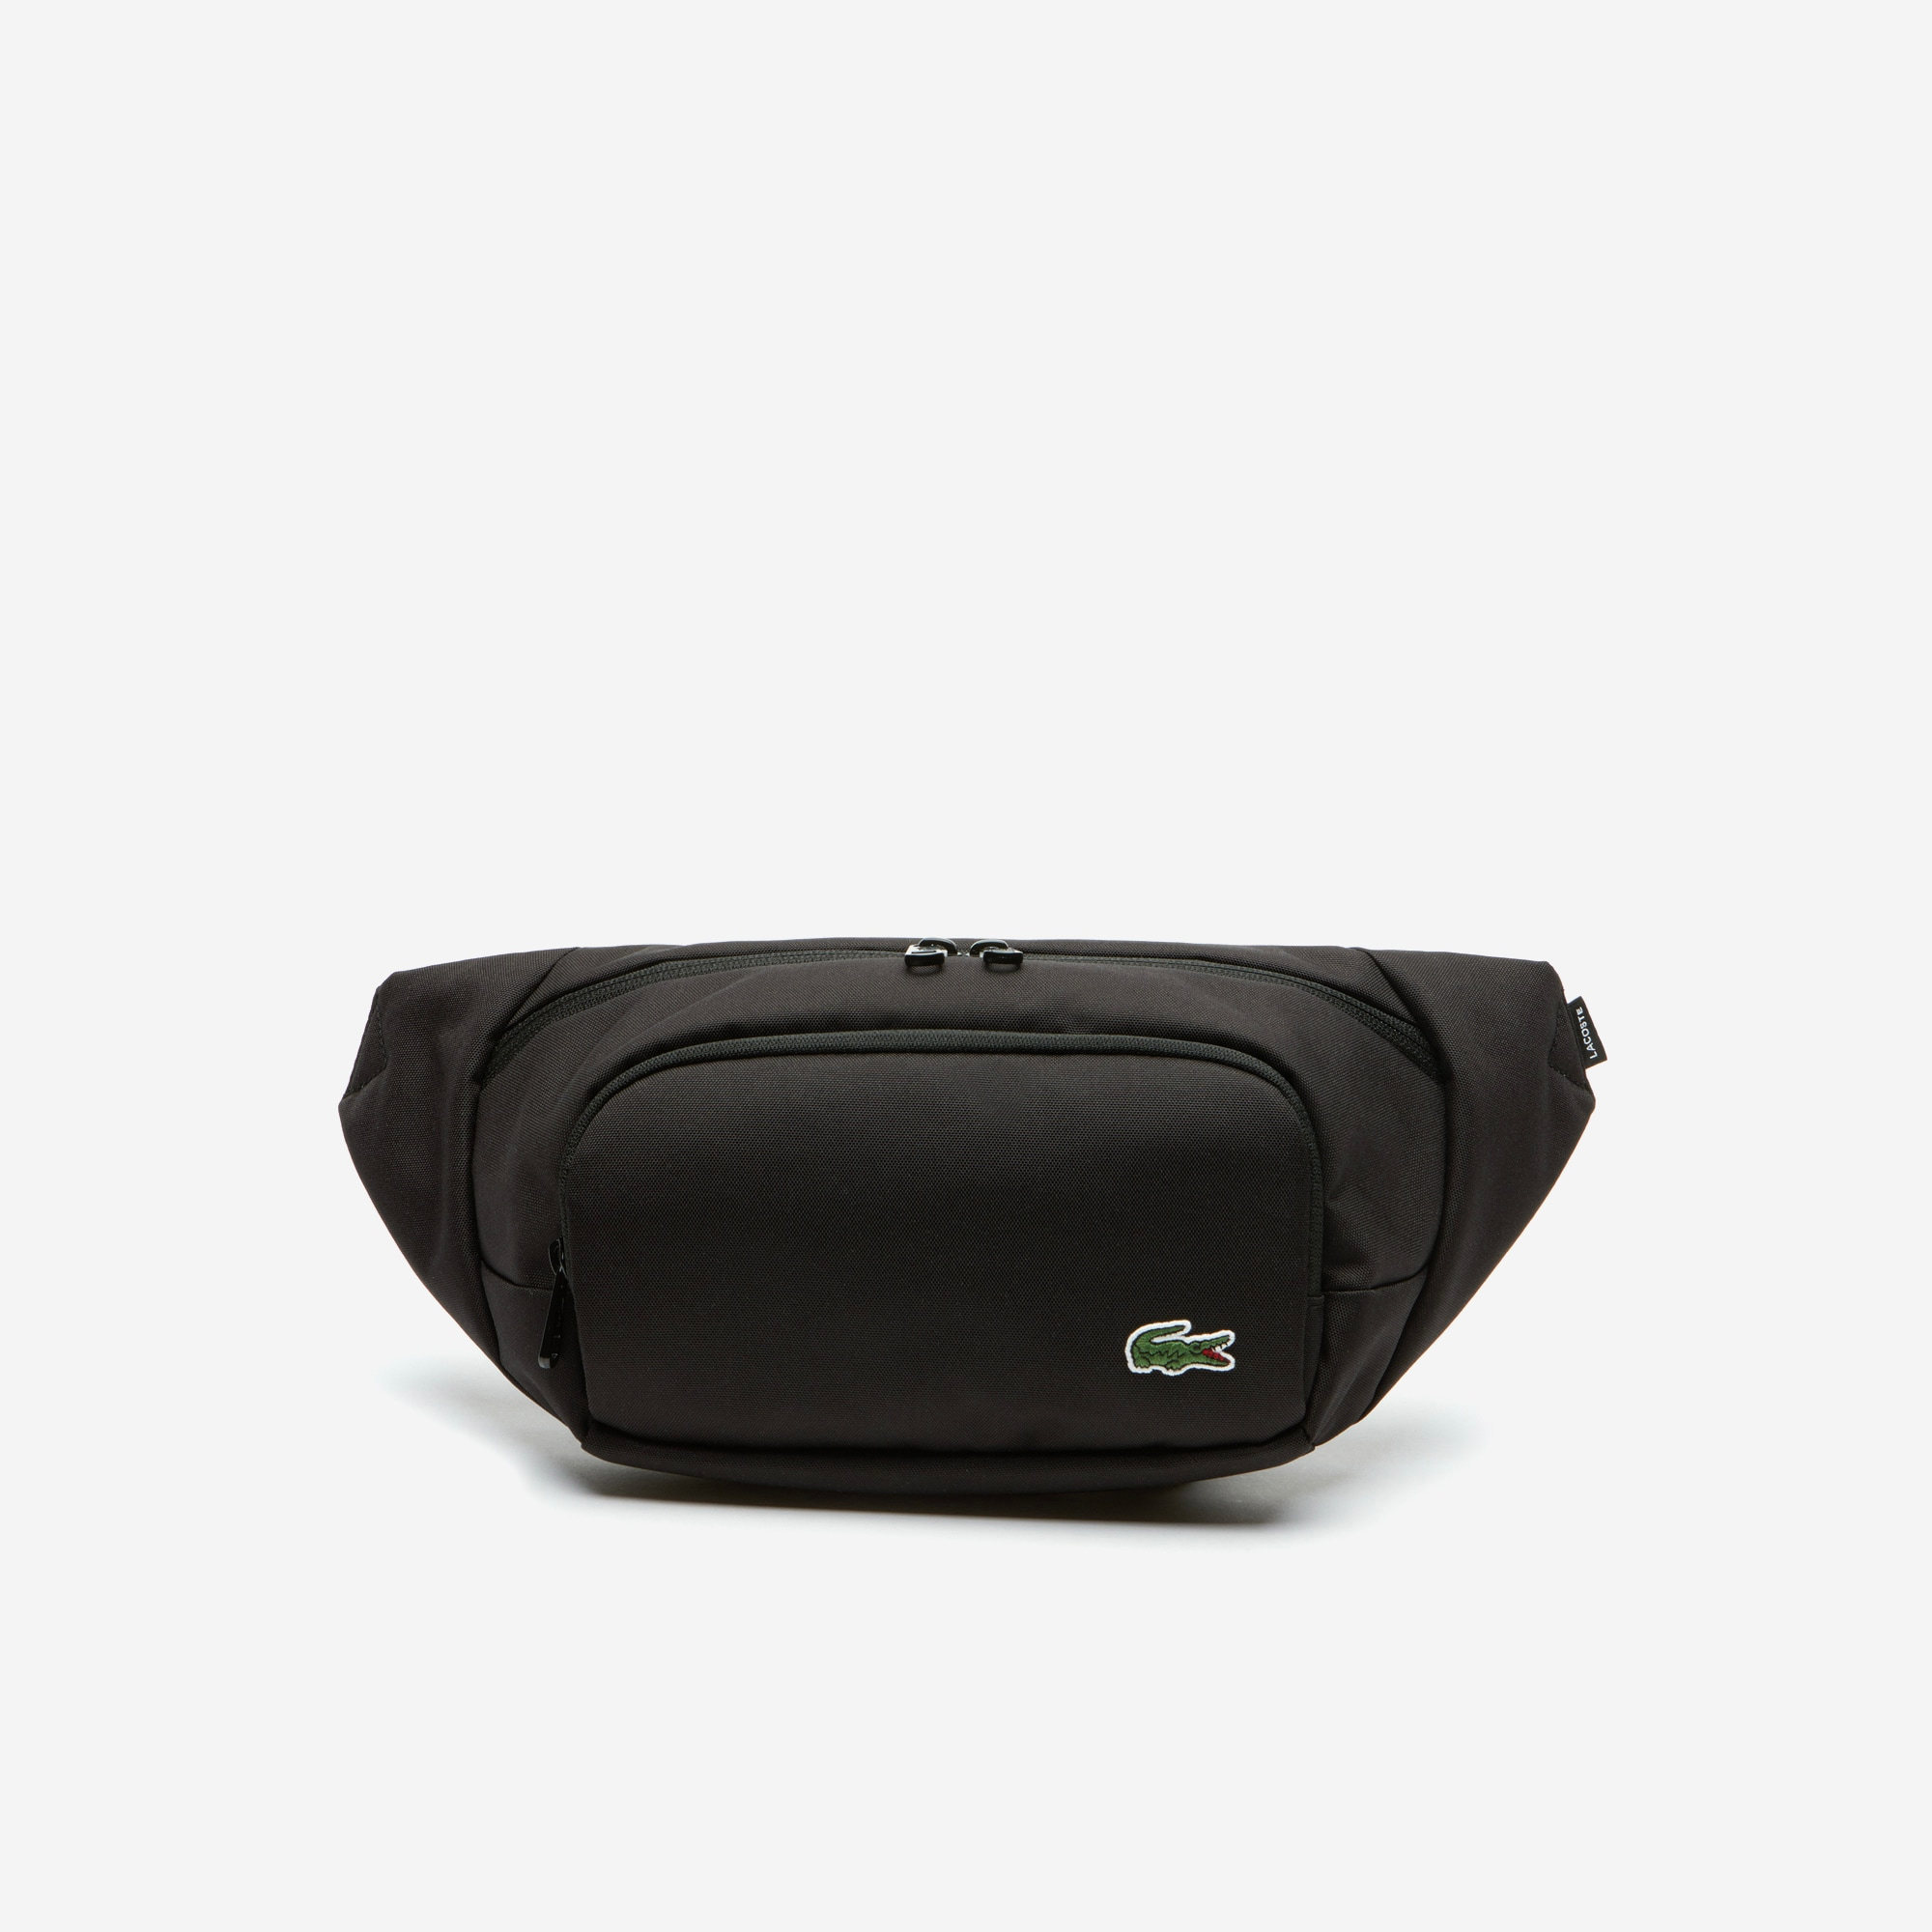 Men's Néocroc Double Pocket Canvas Fanny Pack